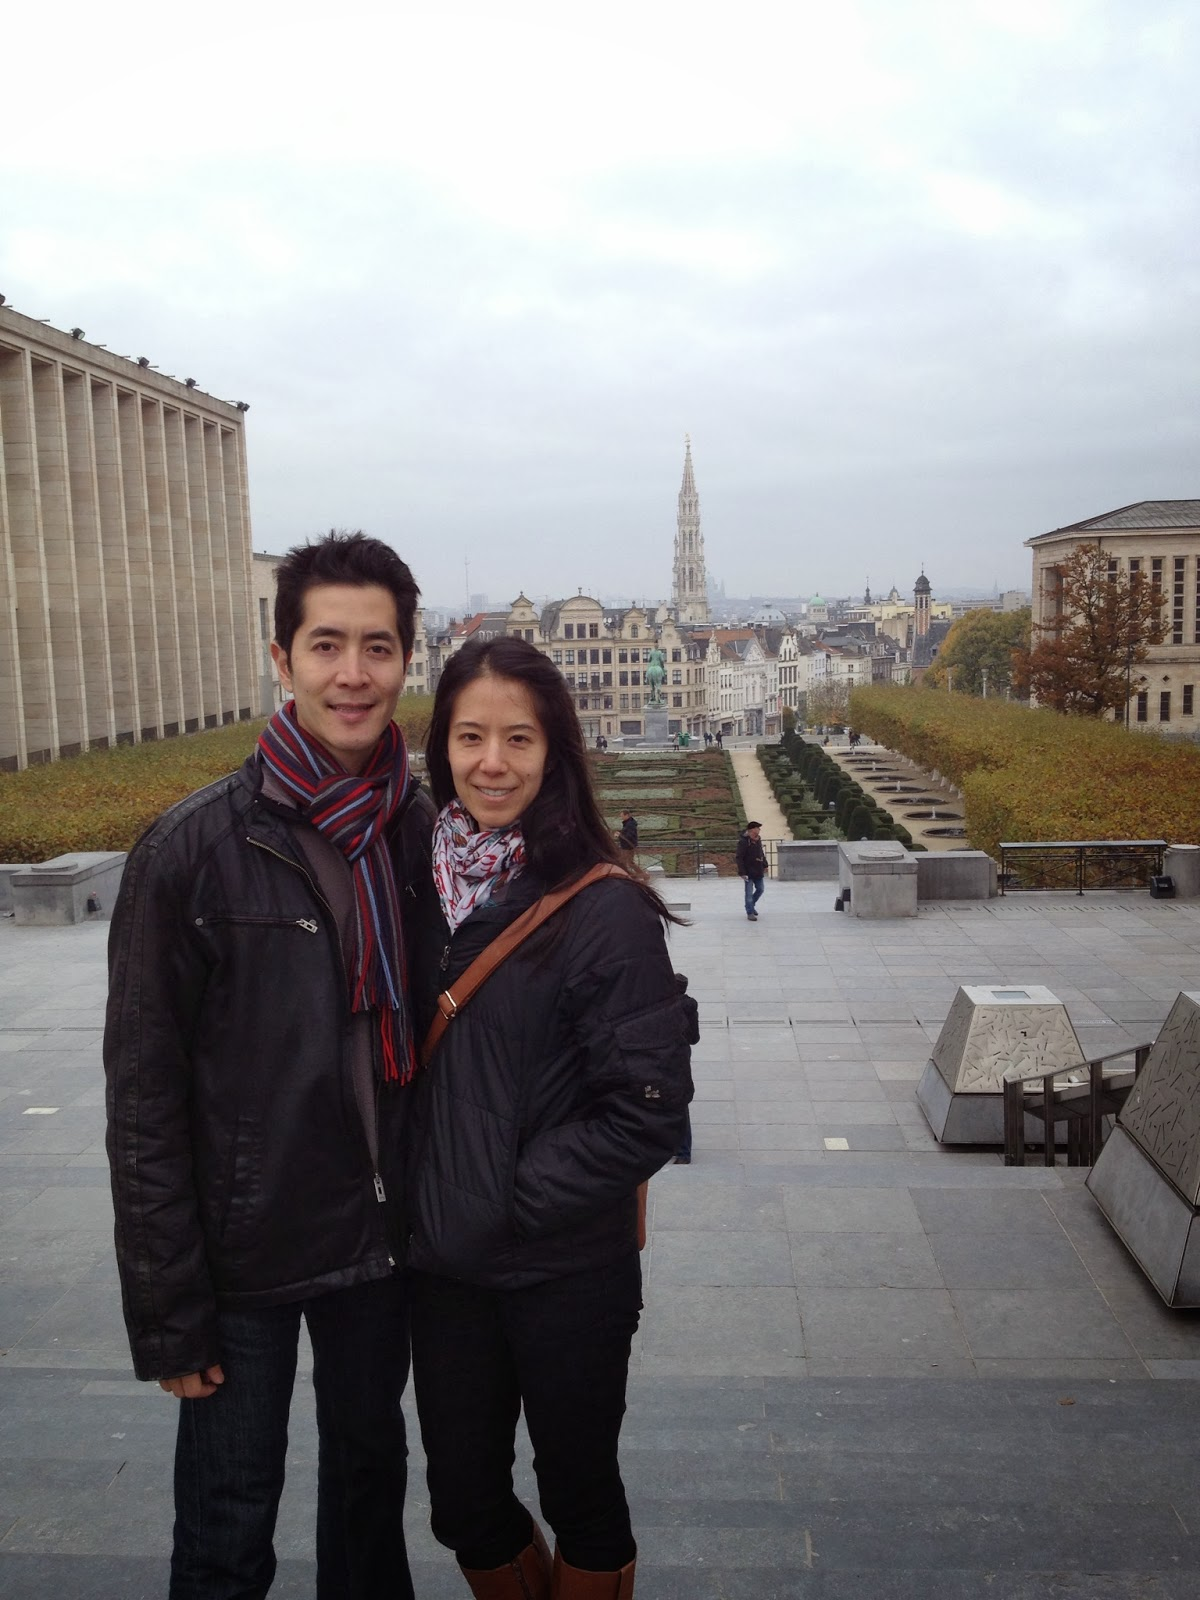 Brussels - Posing with the city center in the background